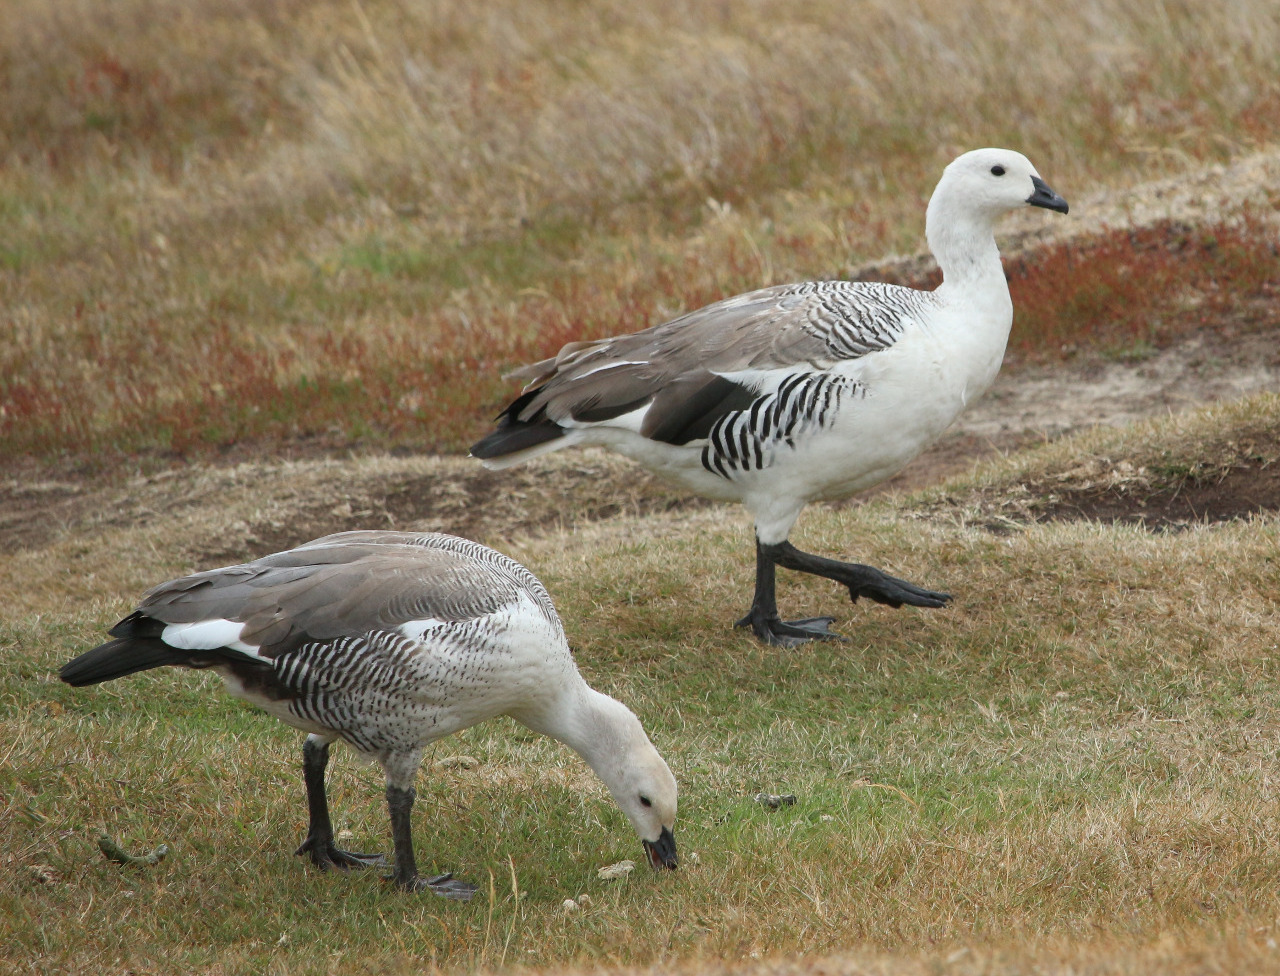 Greater upland geese